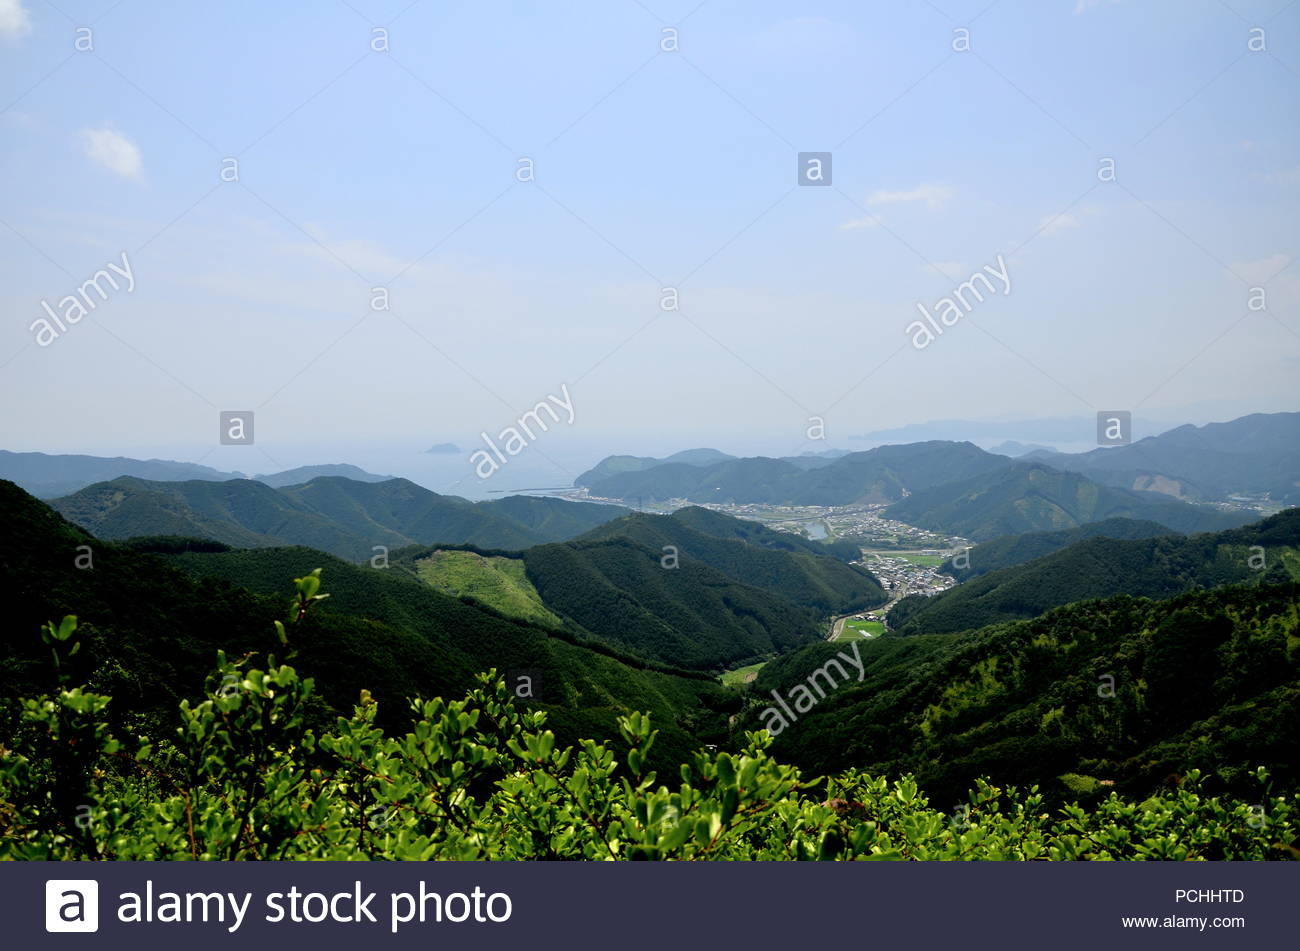 Tsuzurato-toge Pass was once the border between Ise and Kii Provinces. - Stock Image